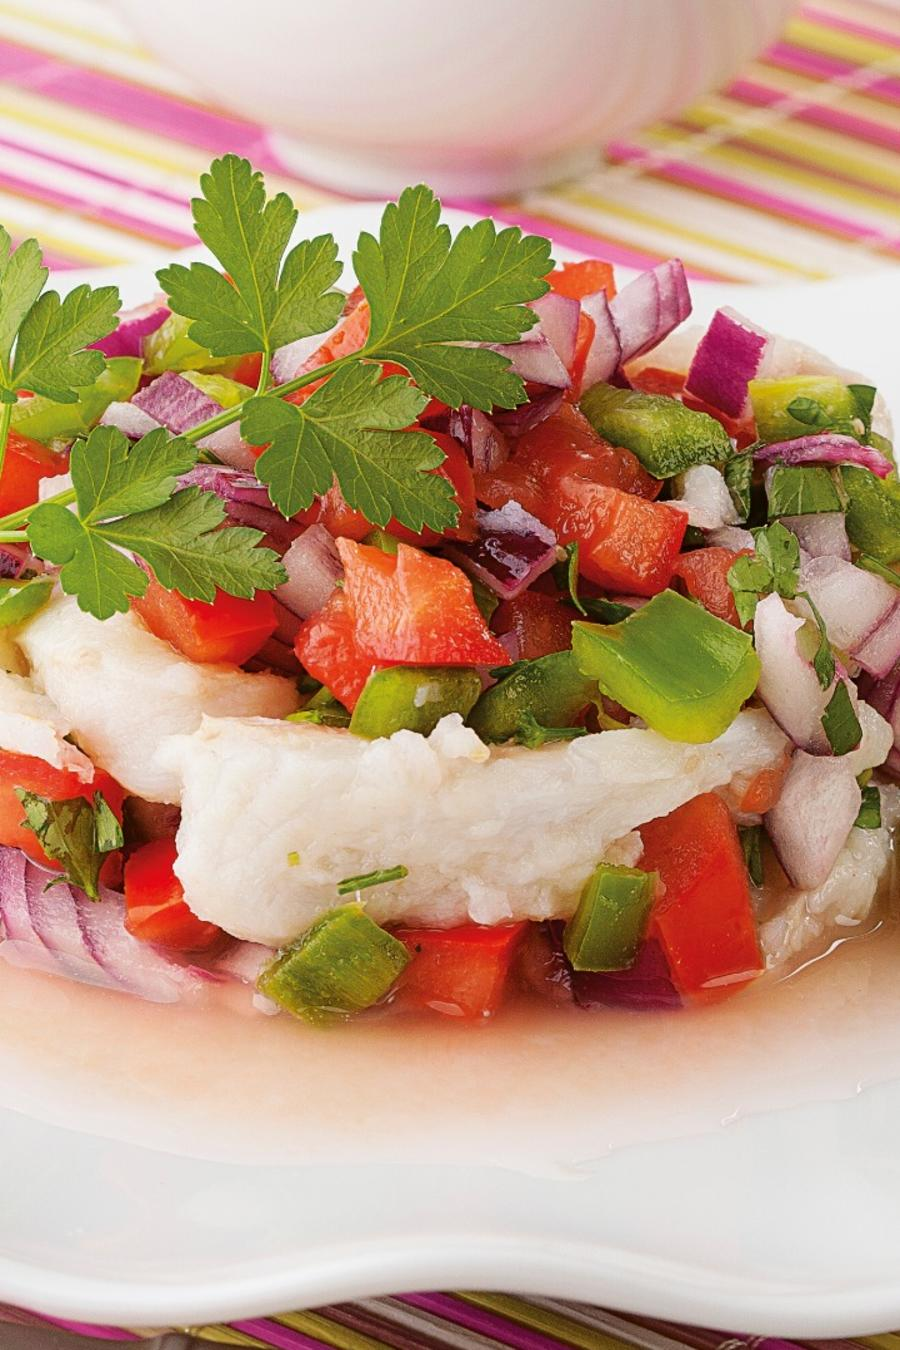 Ceviche on a plate.